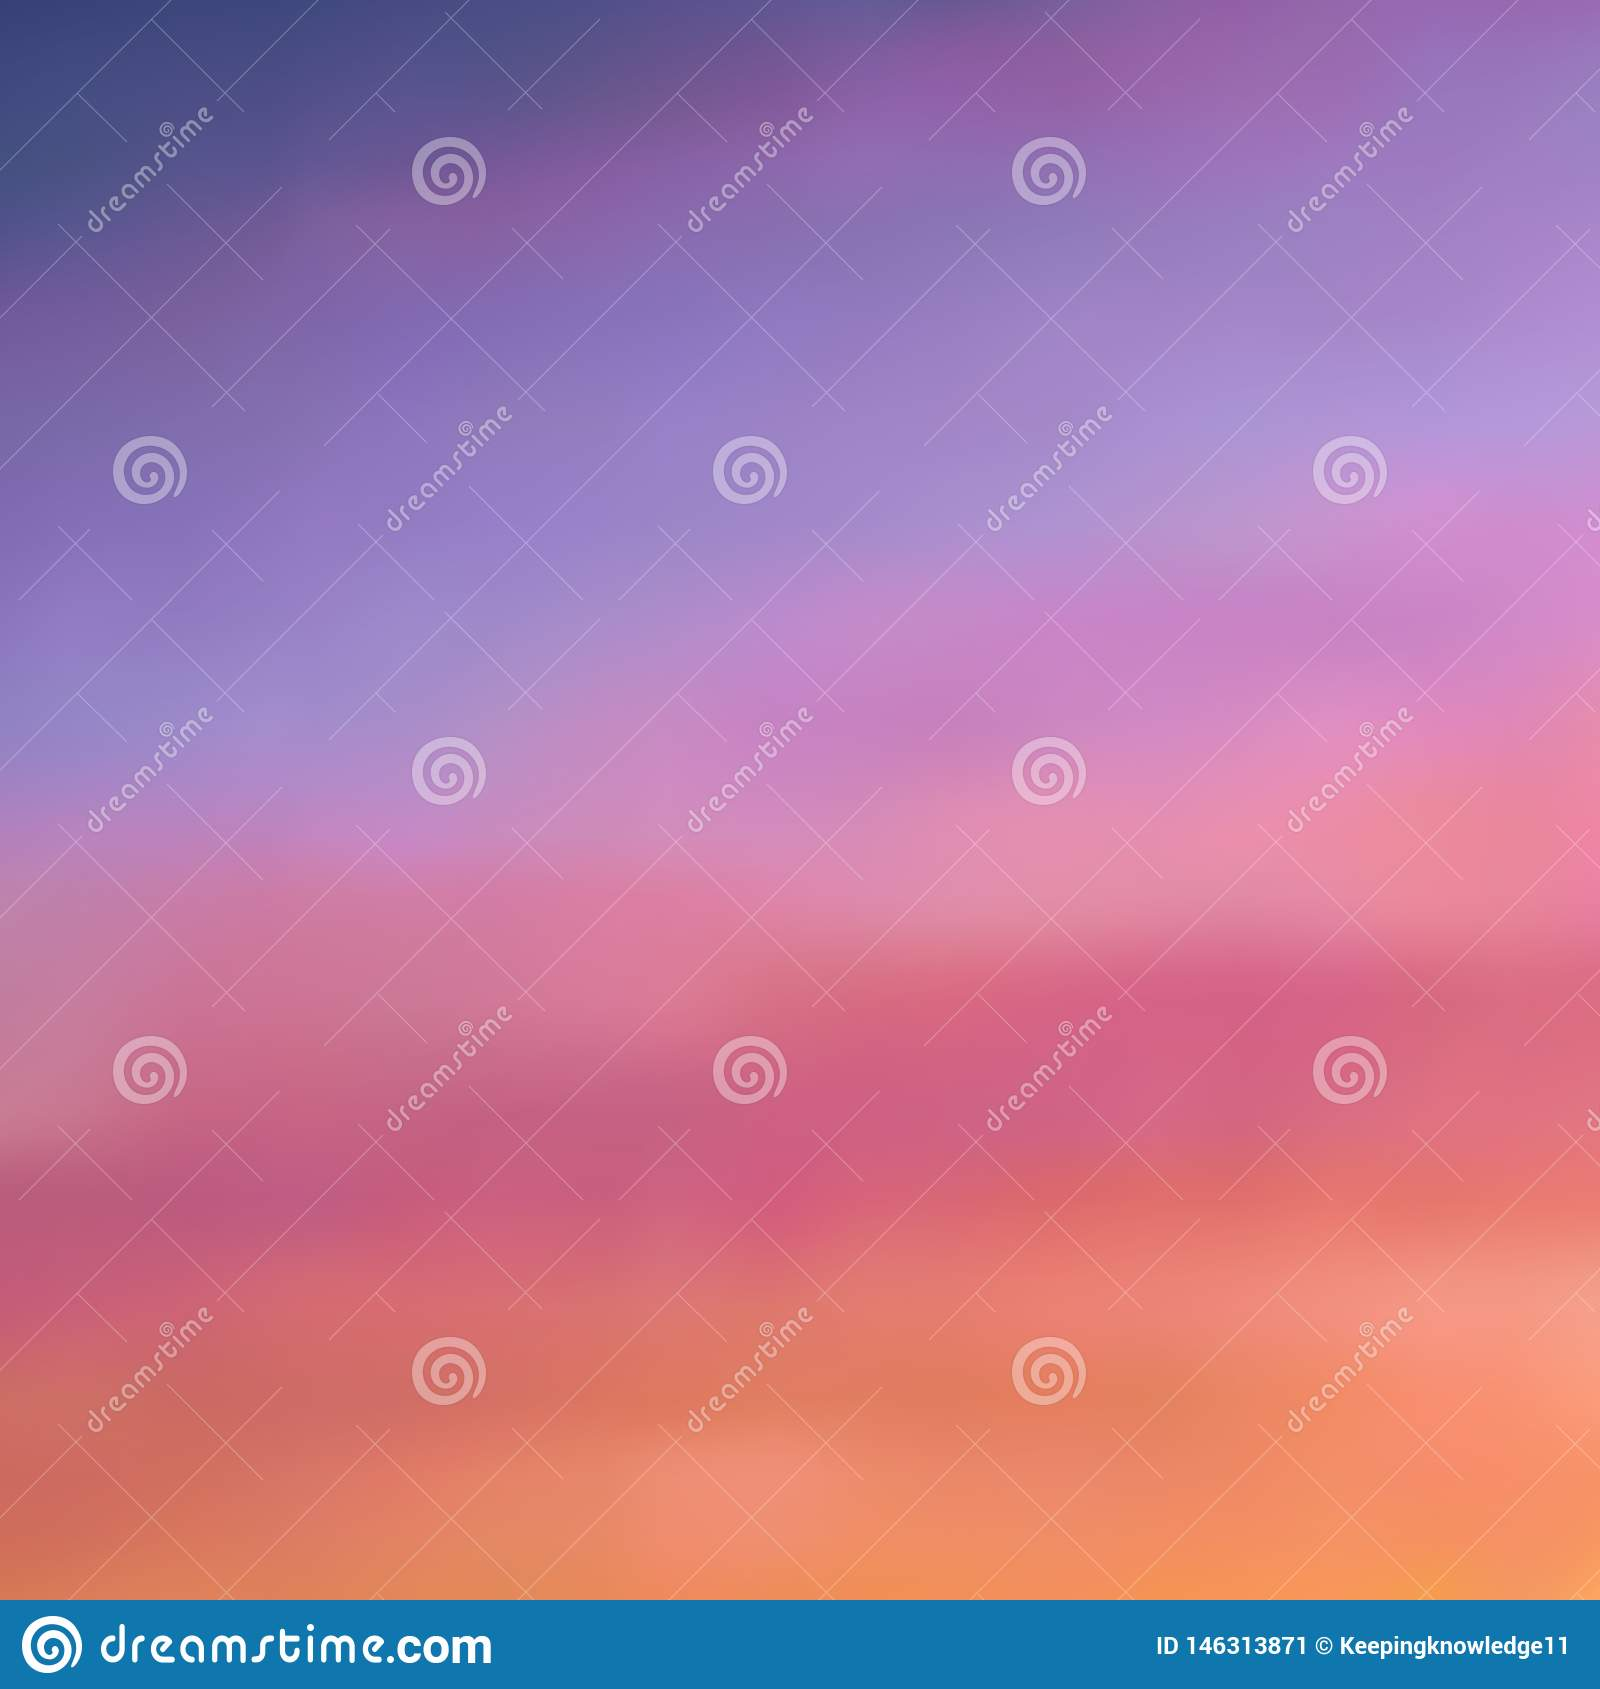 Beautiful blurred background in warm purple-pink and orange tones, sunset sky with light dusting of the clouds, gradient, vector